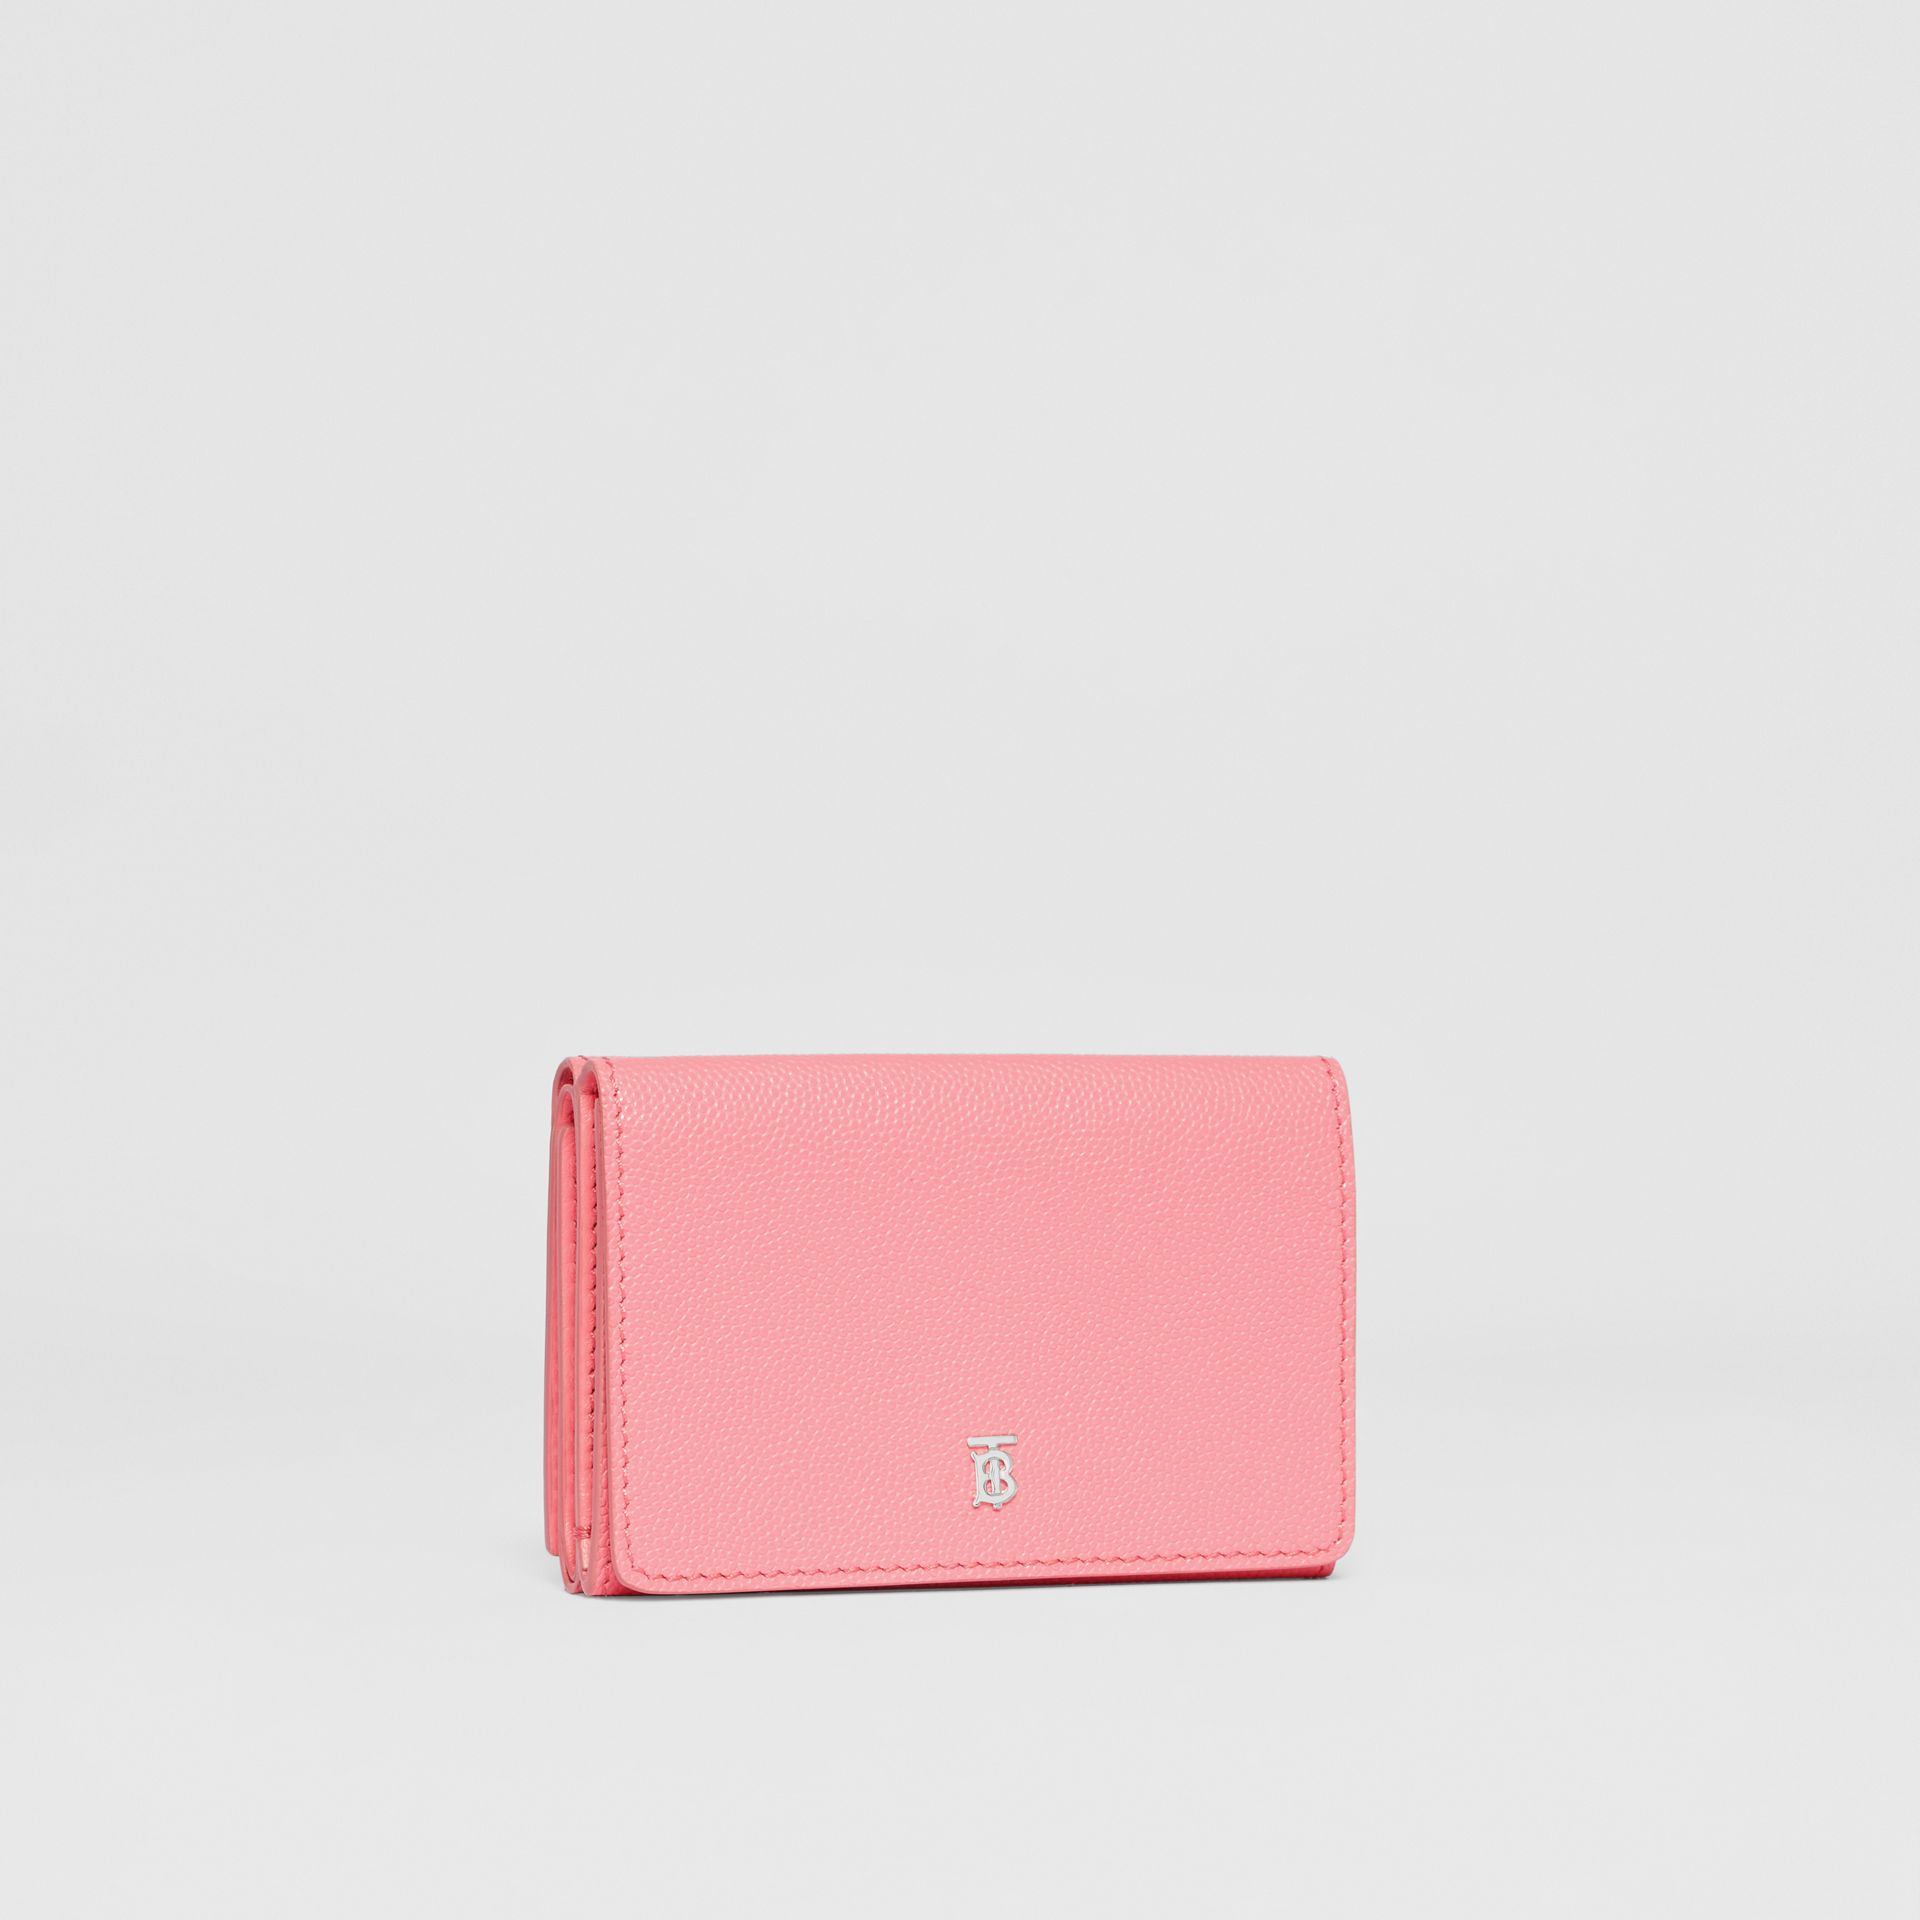 Small Grainy Leather Folding Wallet in Candy Floss/palladio - Women | Burberry United Kingdom - gallery image 3